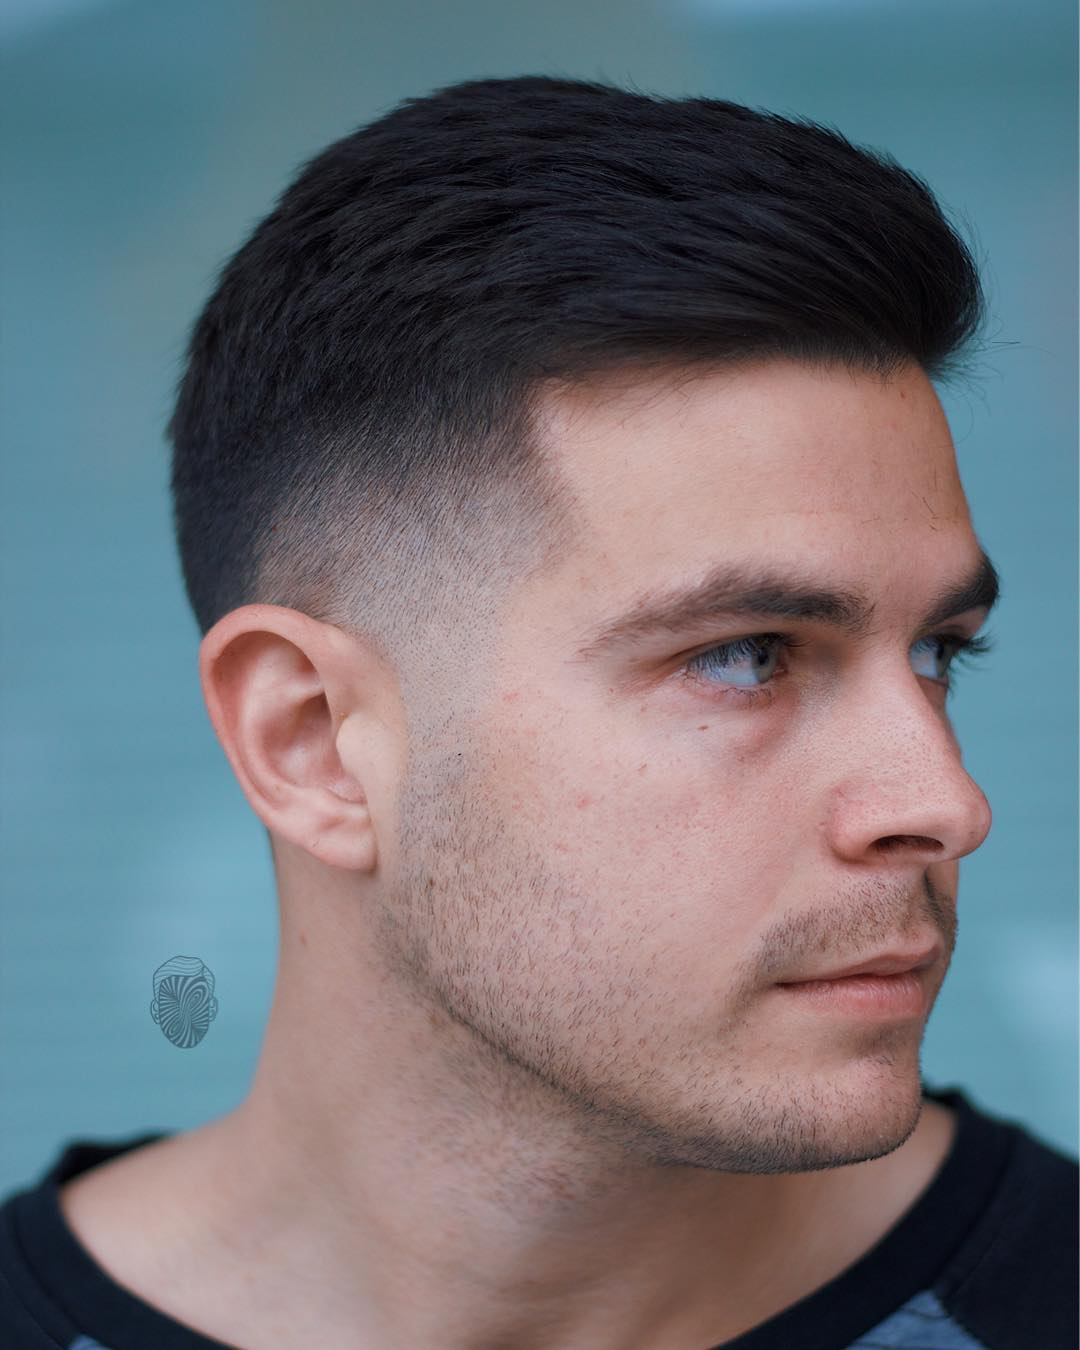 Short Hairstyles for Men 2018